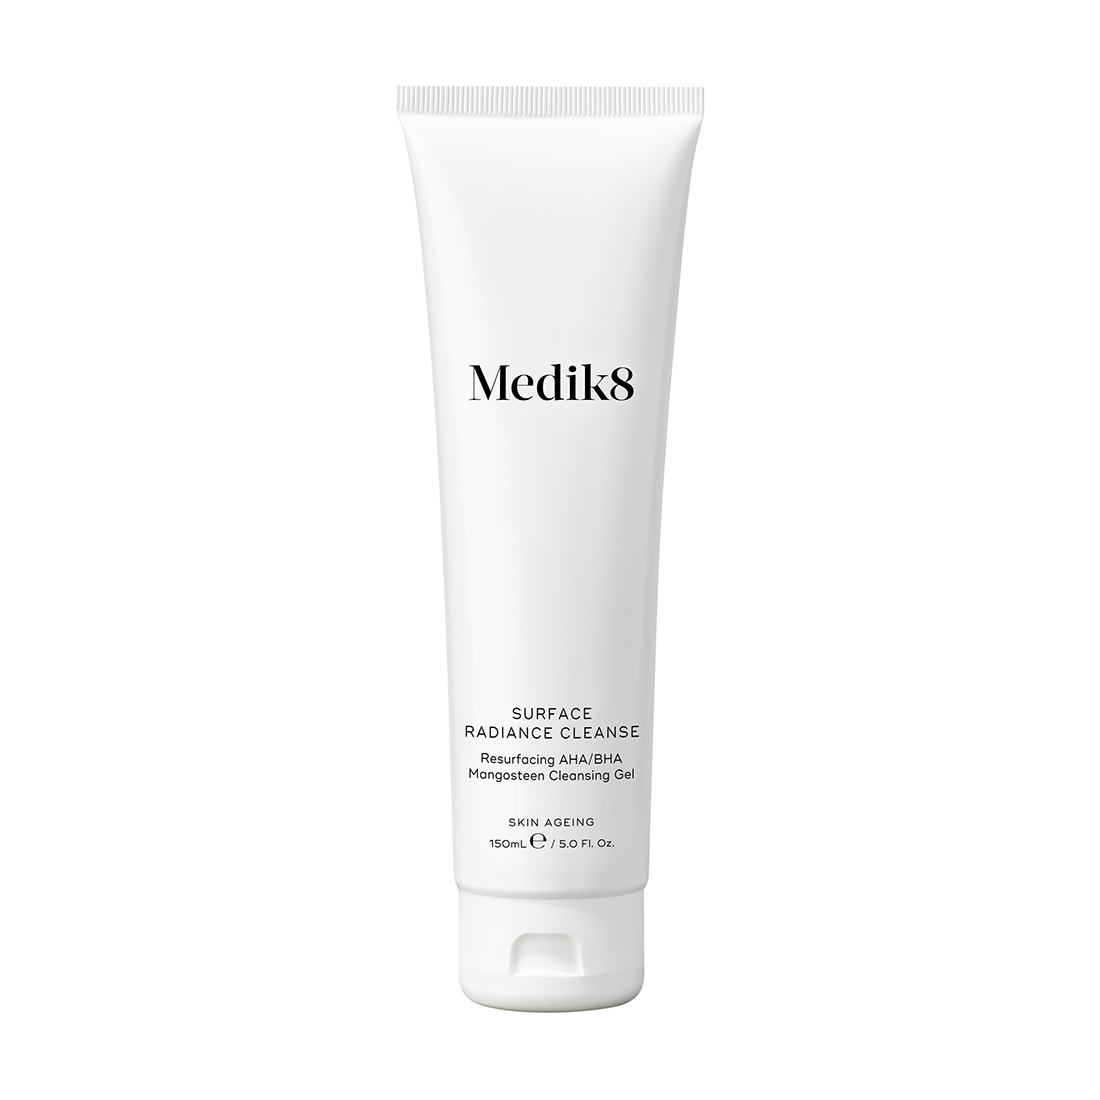 Medik8 Surface Radiance Cleanse , 150ml